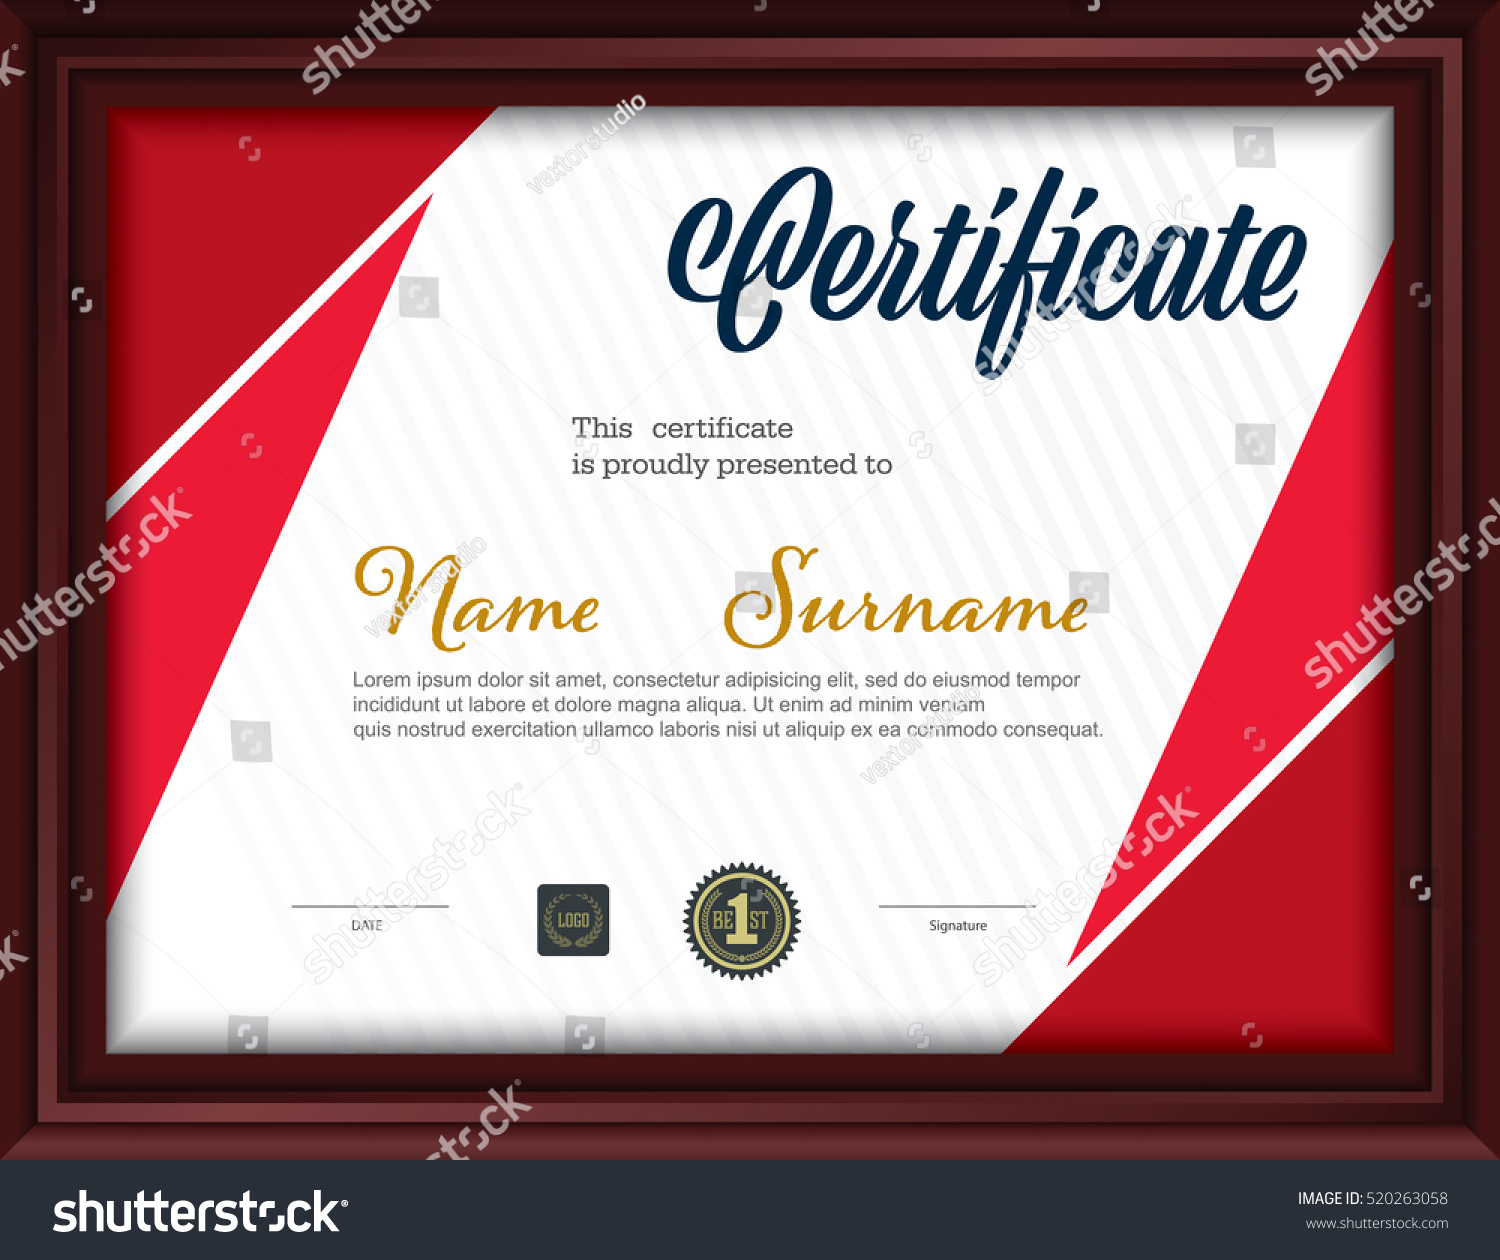 Business certificate templates badminton certificate generic business certificate templates badminton certificate business certificate templates badminton certificate yadclub Images